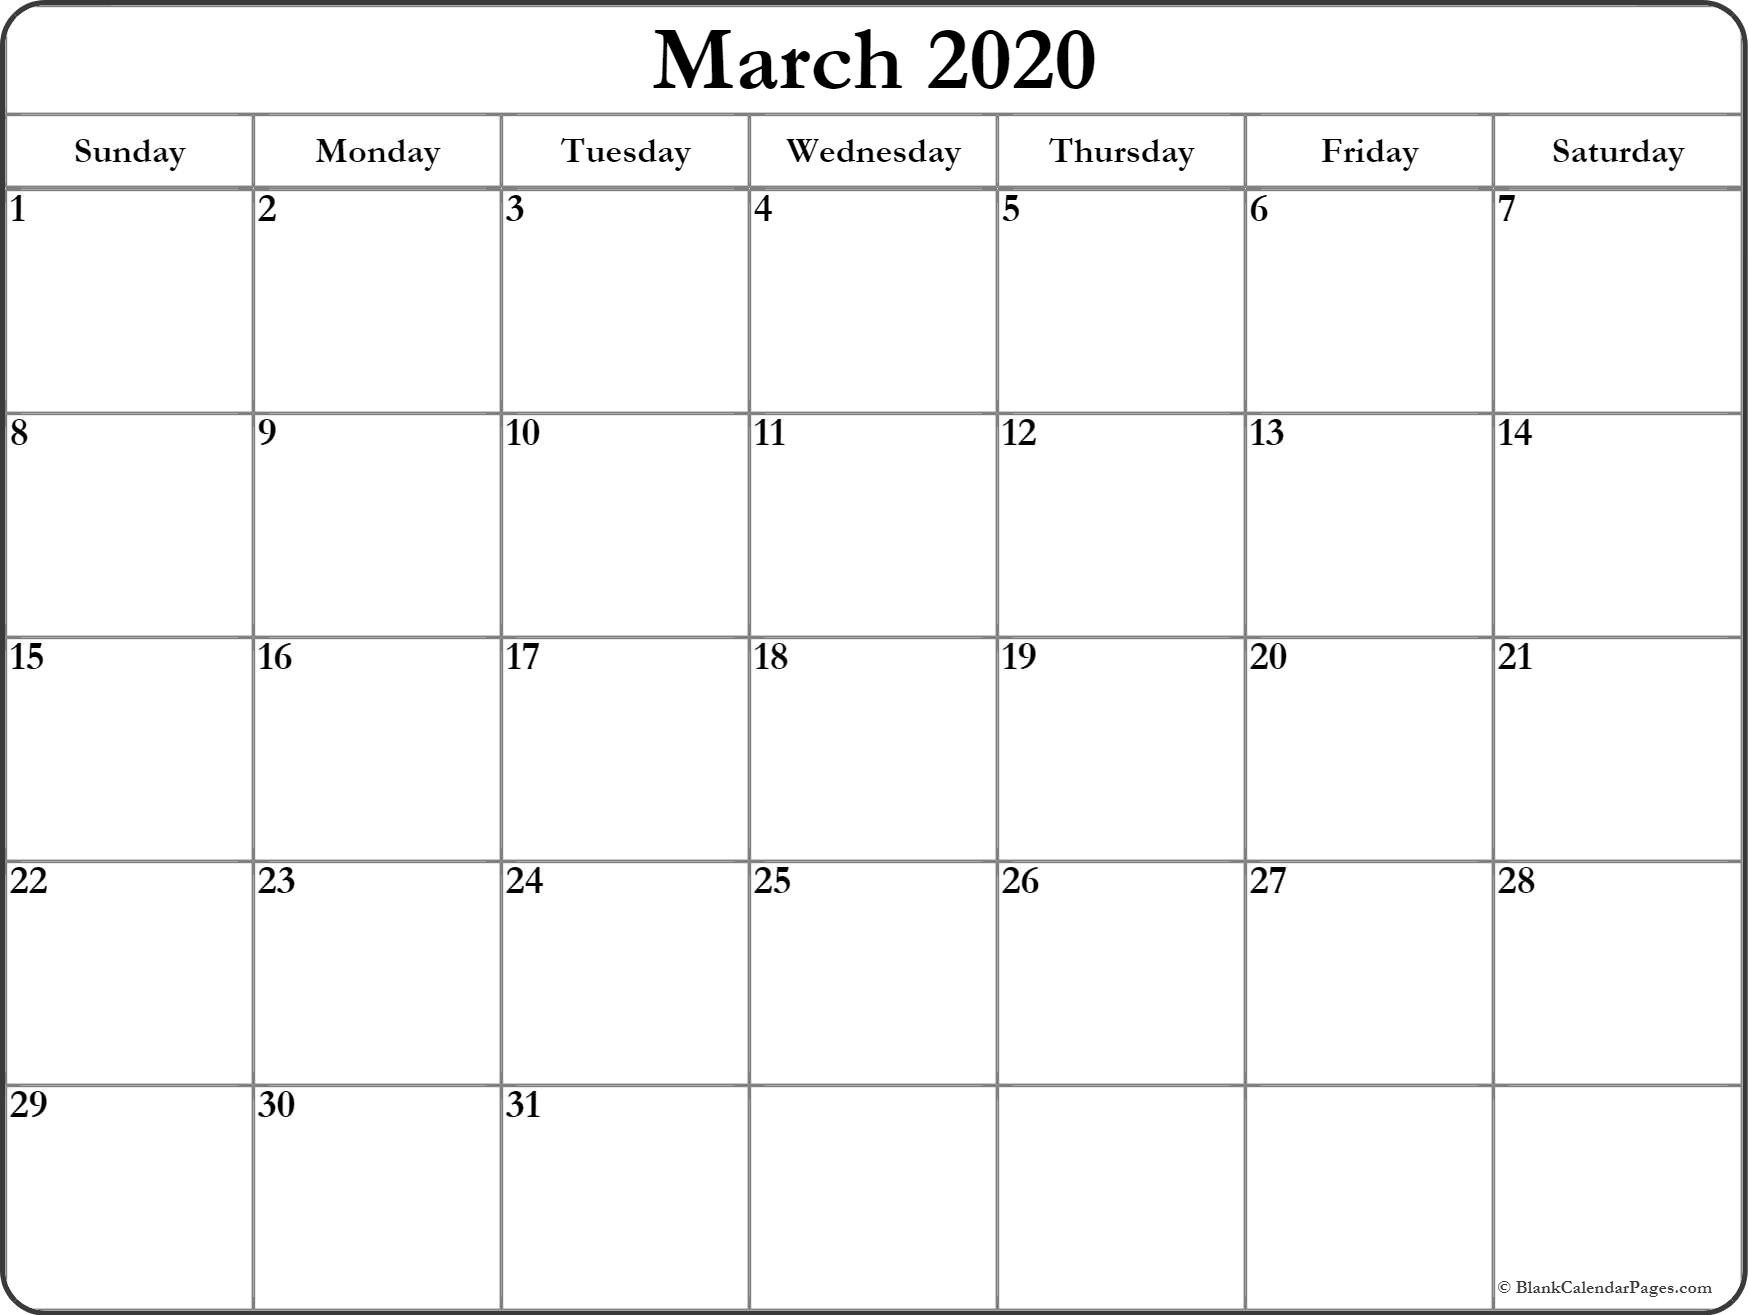 March 2020 Calendar | Free Printable Monthly Calendars-Printable Blank Calendar Pages Free 2020